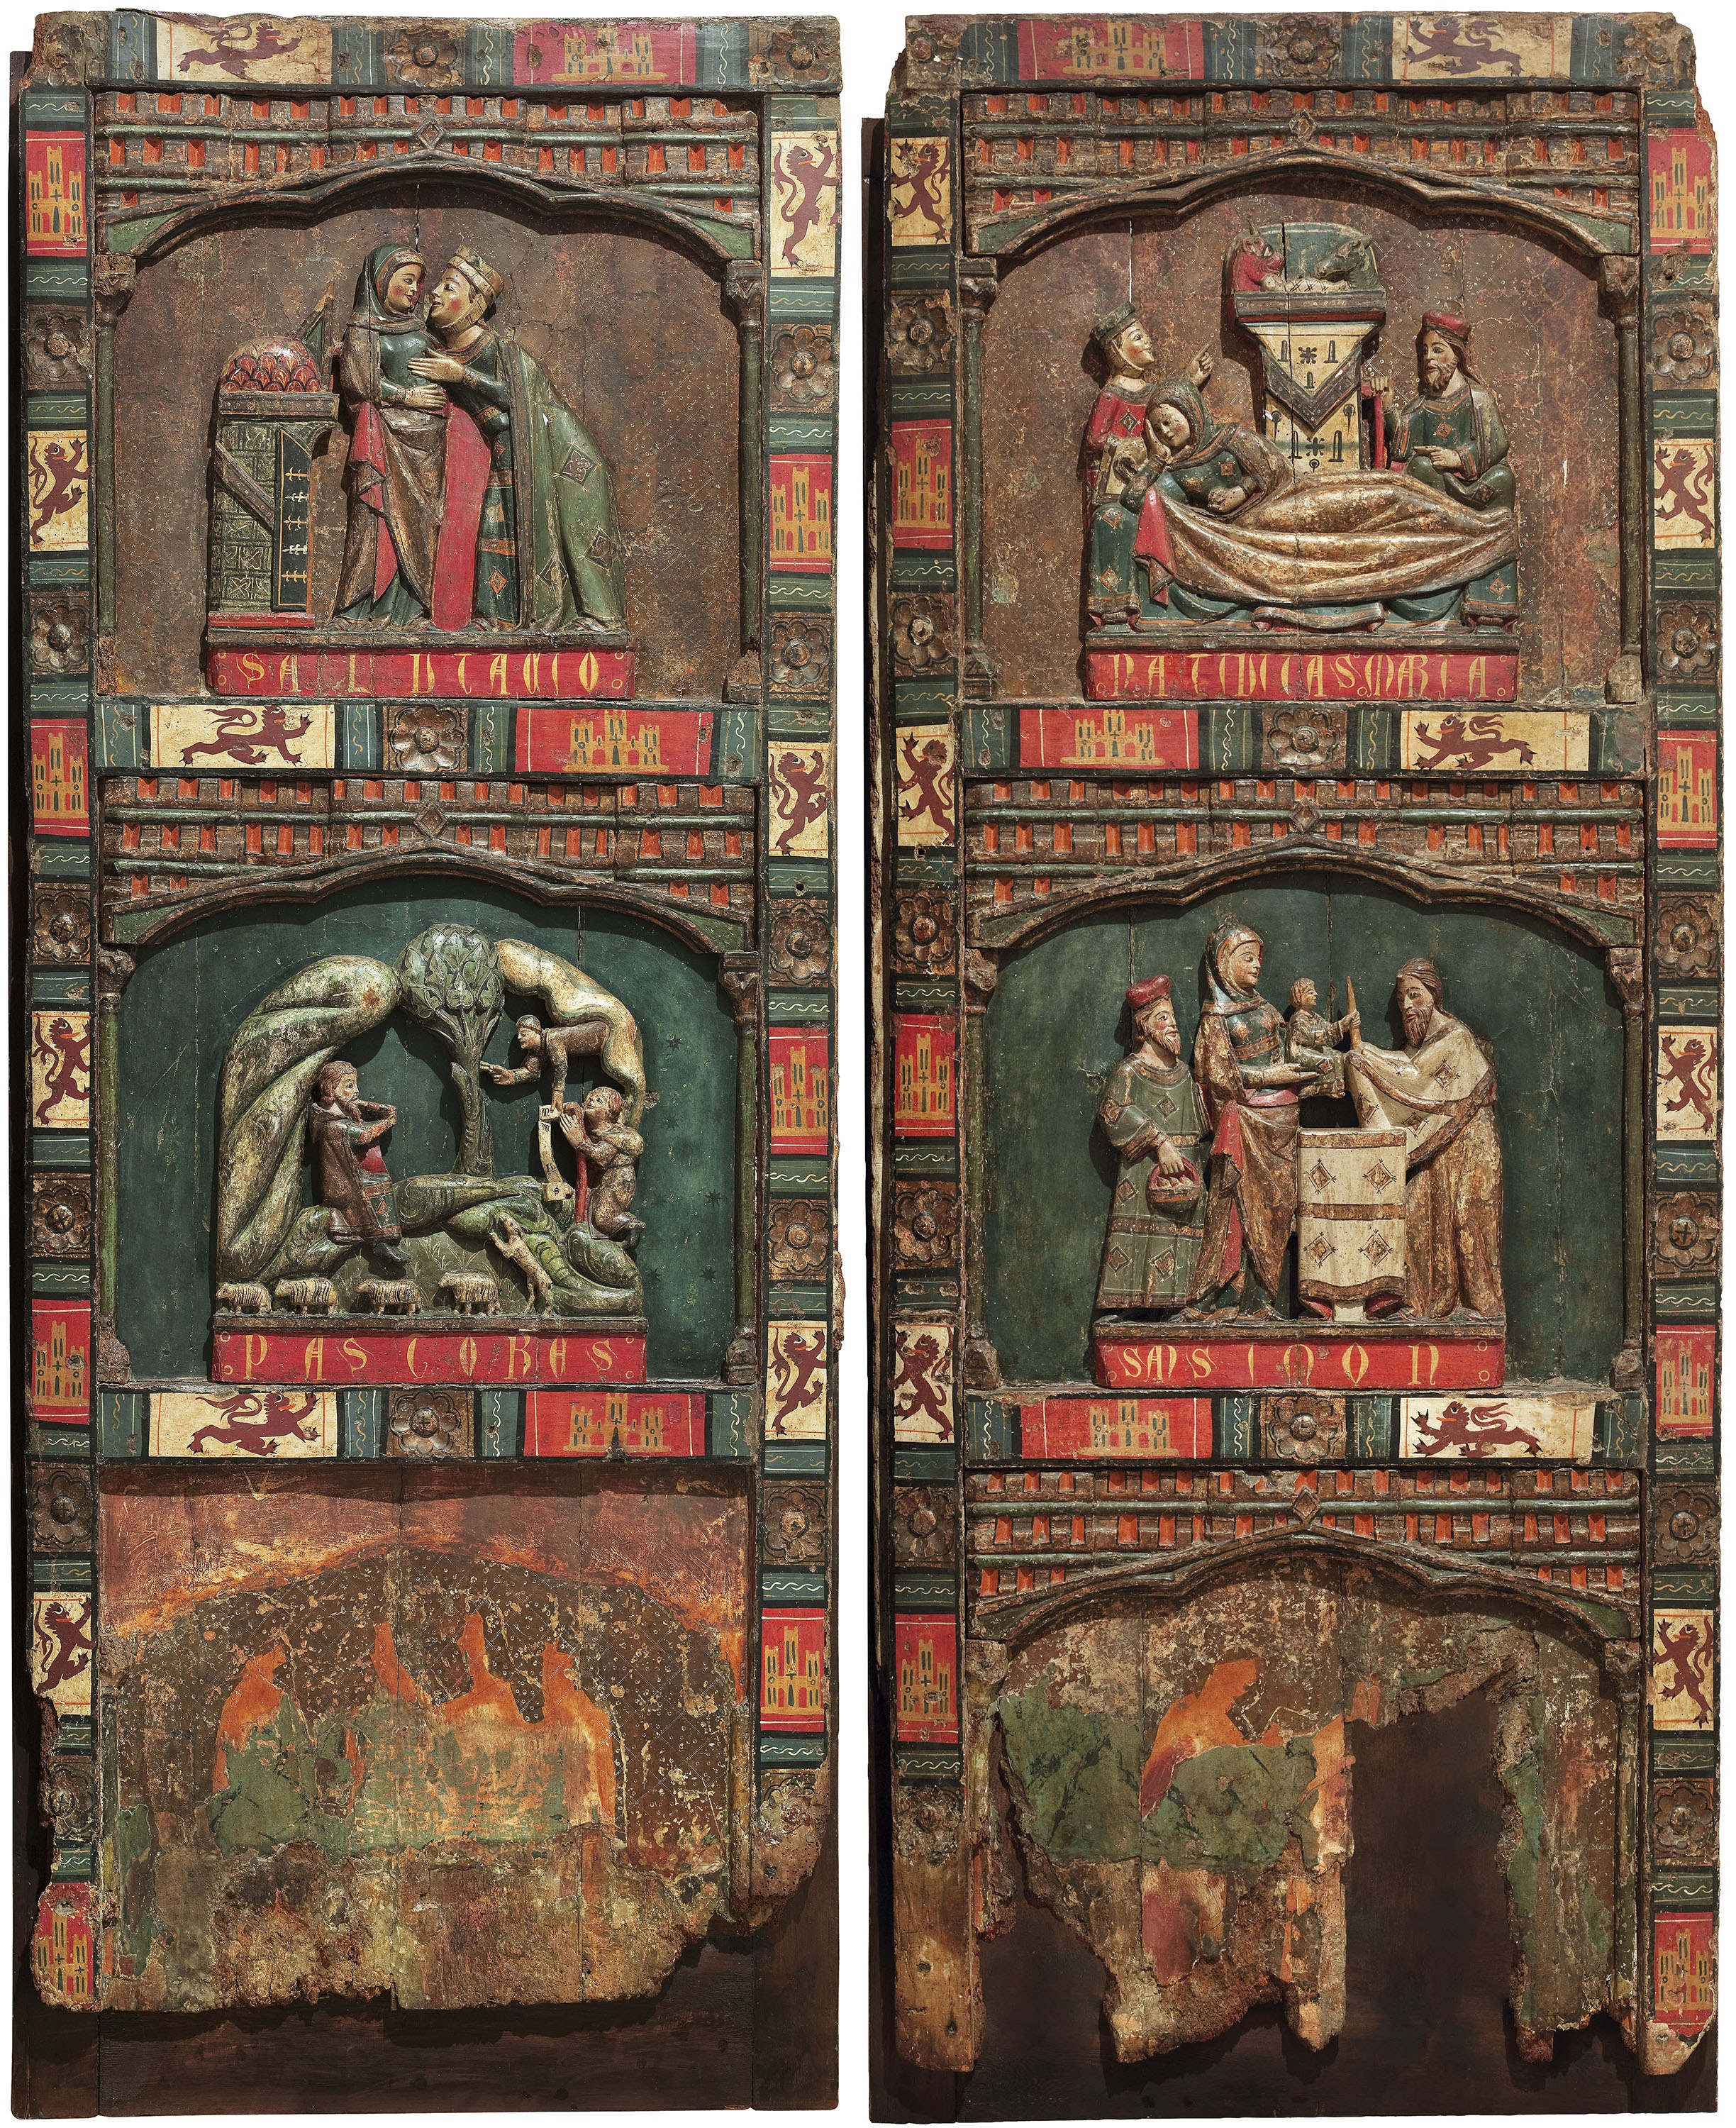 Anònim. Castella - Panels from a retable of the Childhood of Christ - Second half of the 13th century